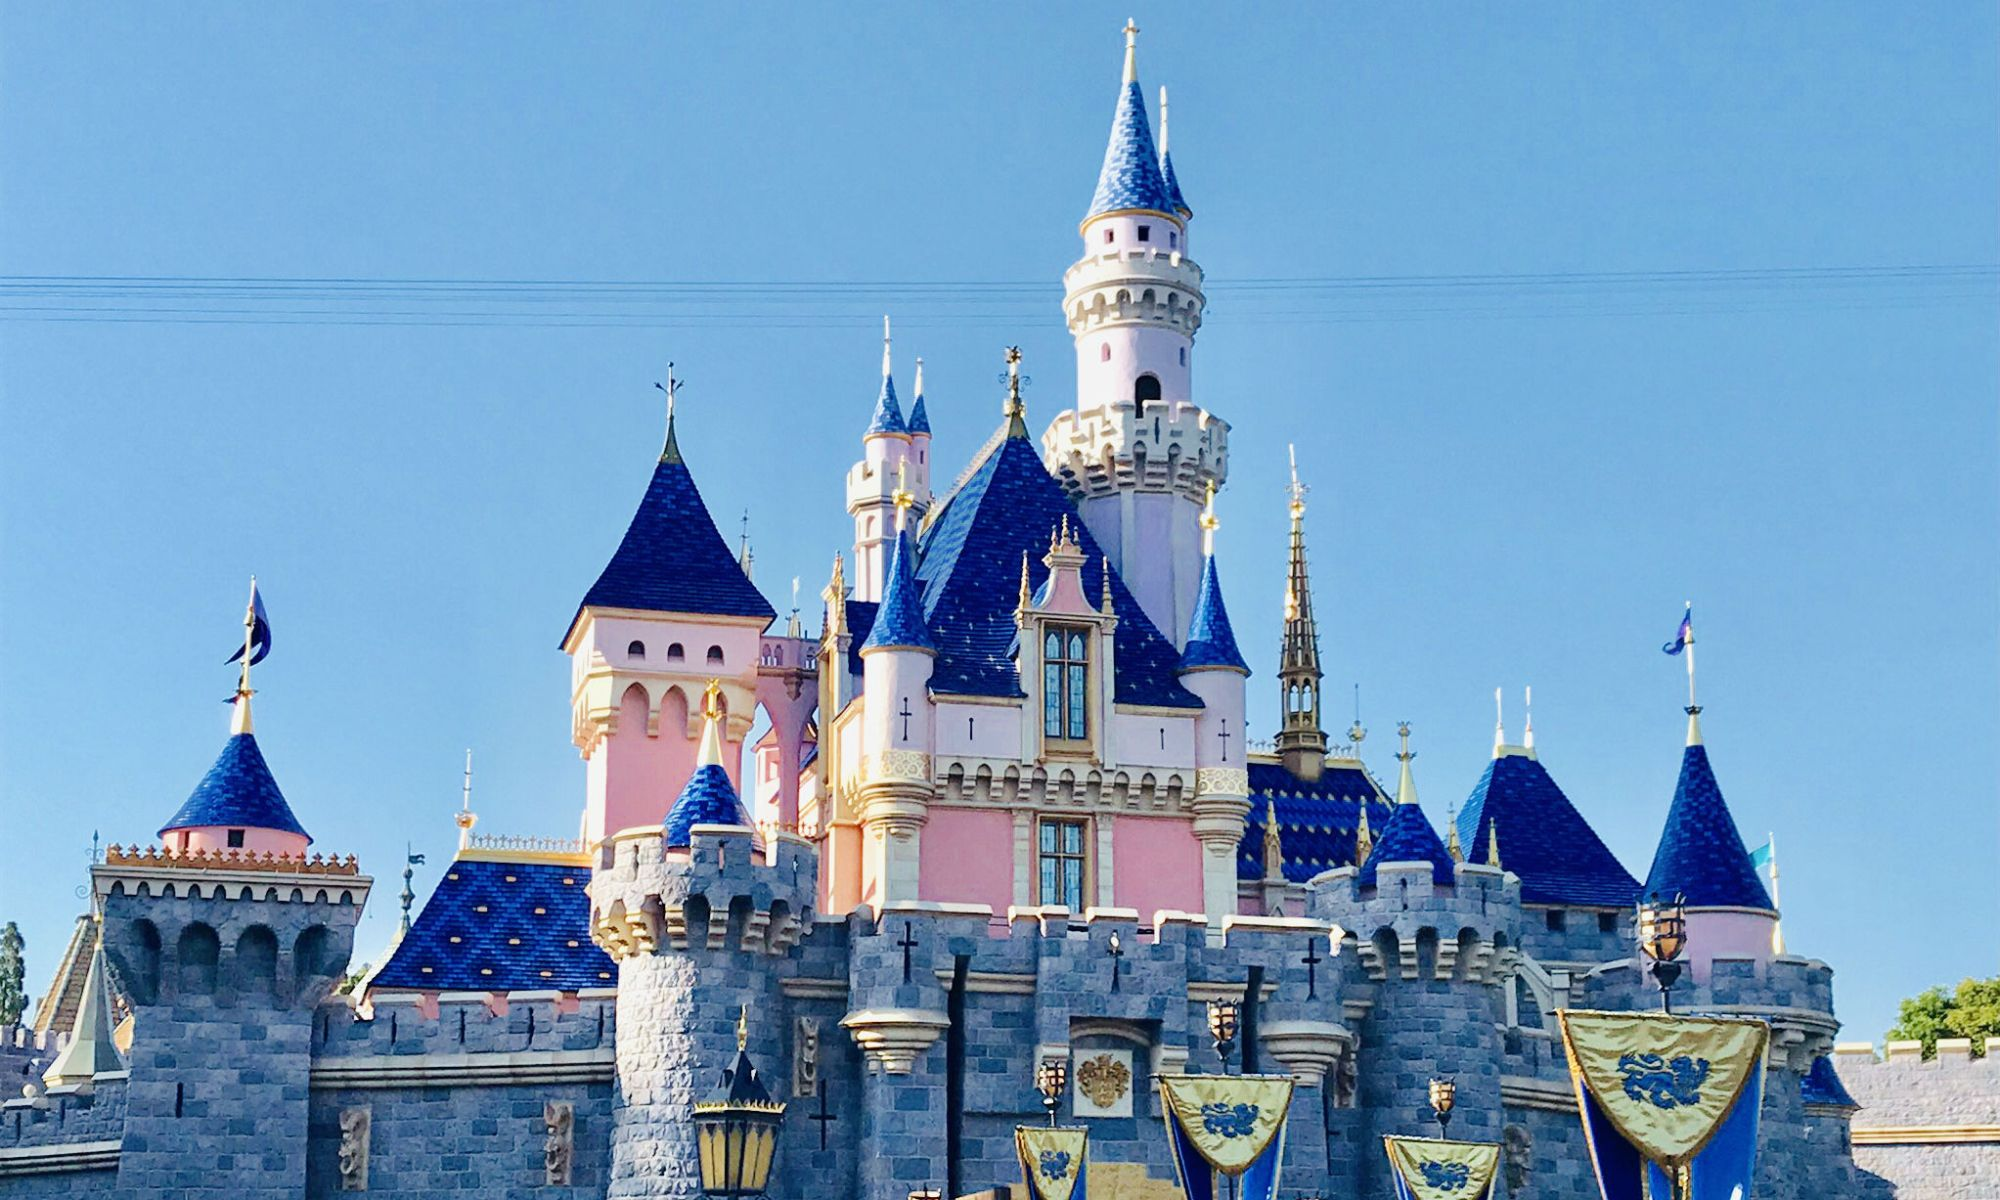 Photo of Sleeping Beauty Castle